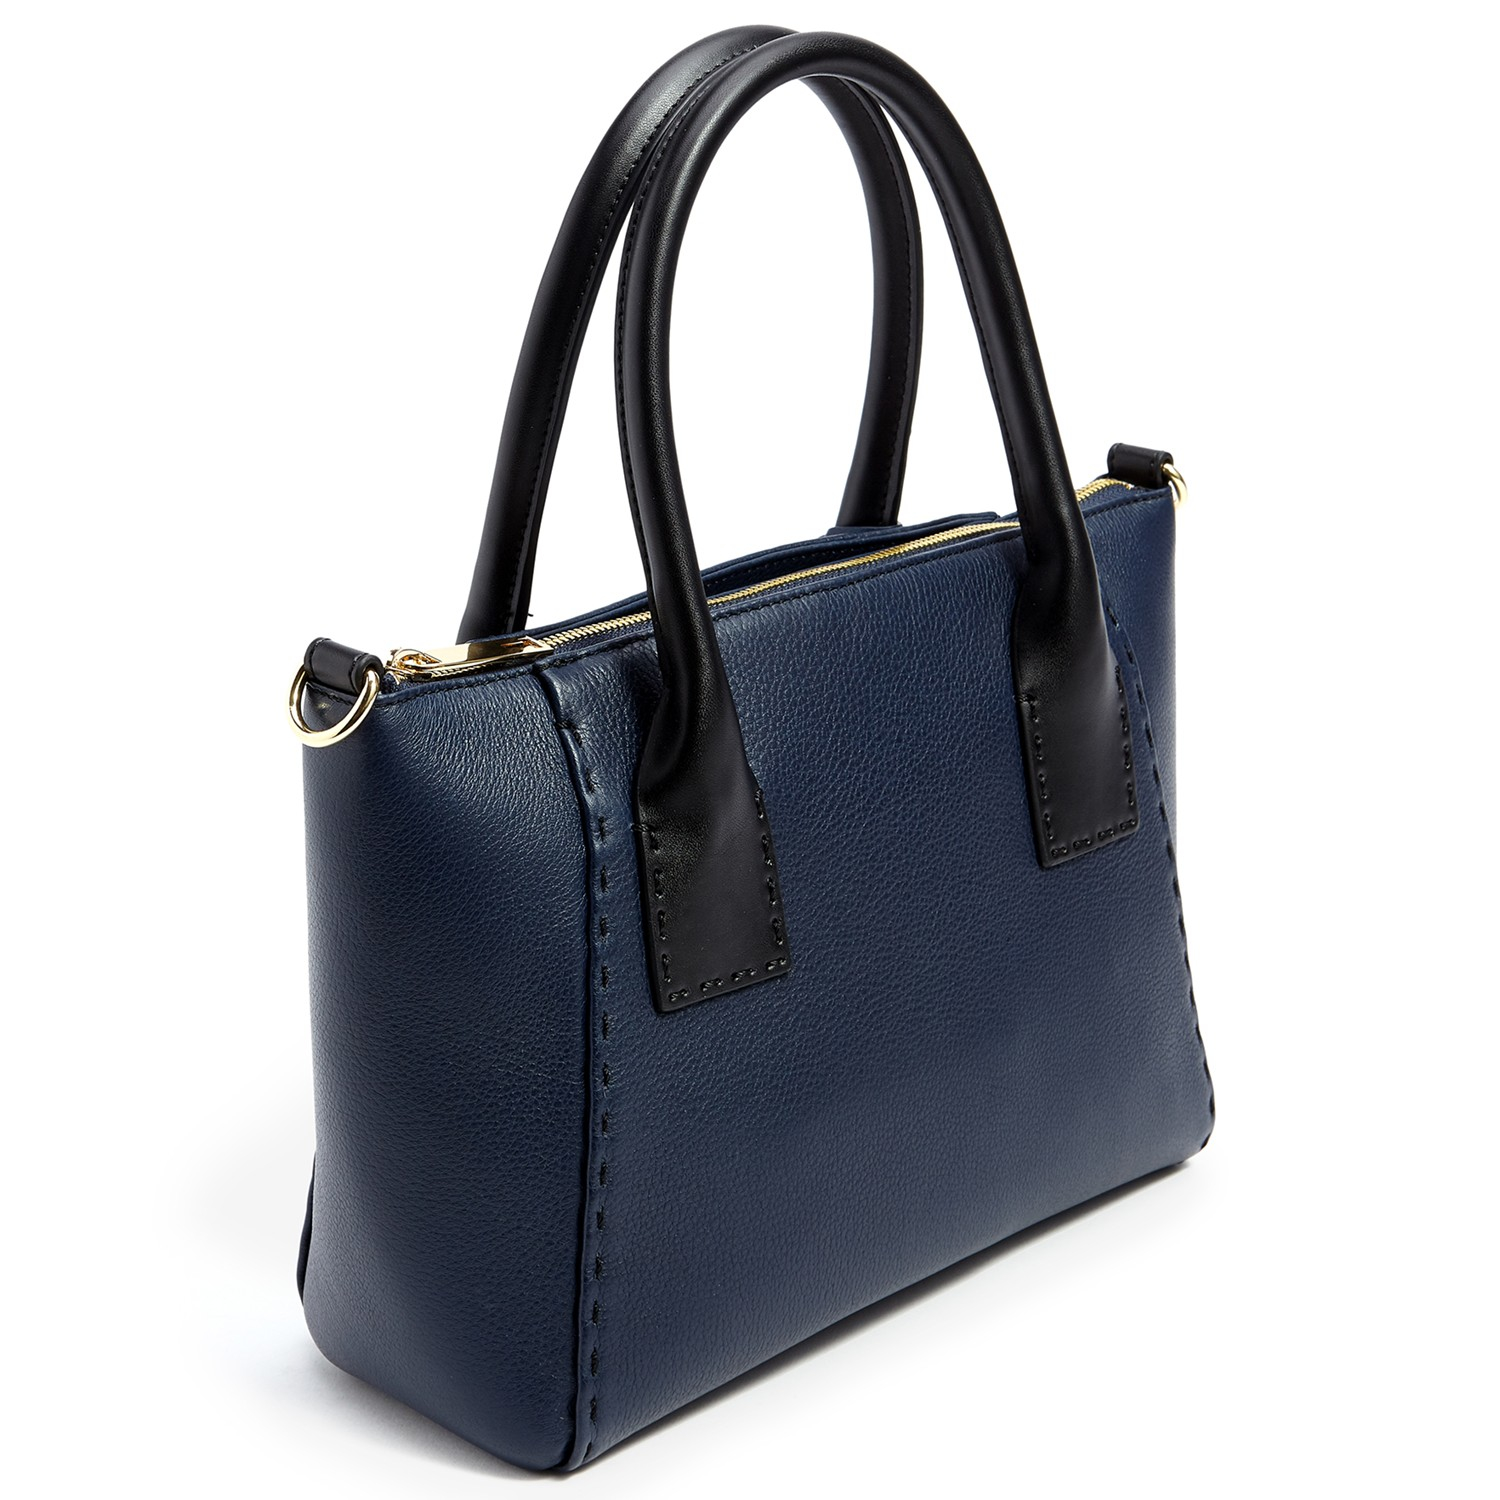 2e21067fbccc ... Track over 2125 Ted Baker Totes and shopper bags for stock and sale  updates.